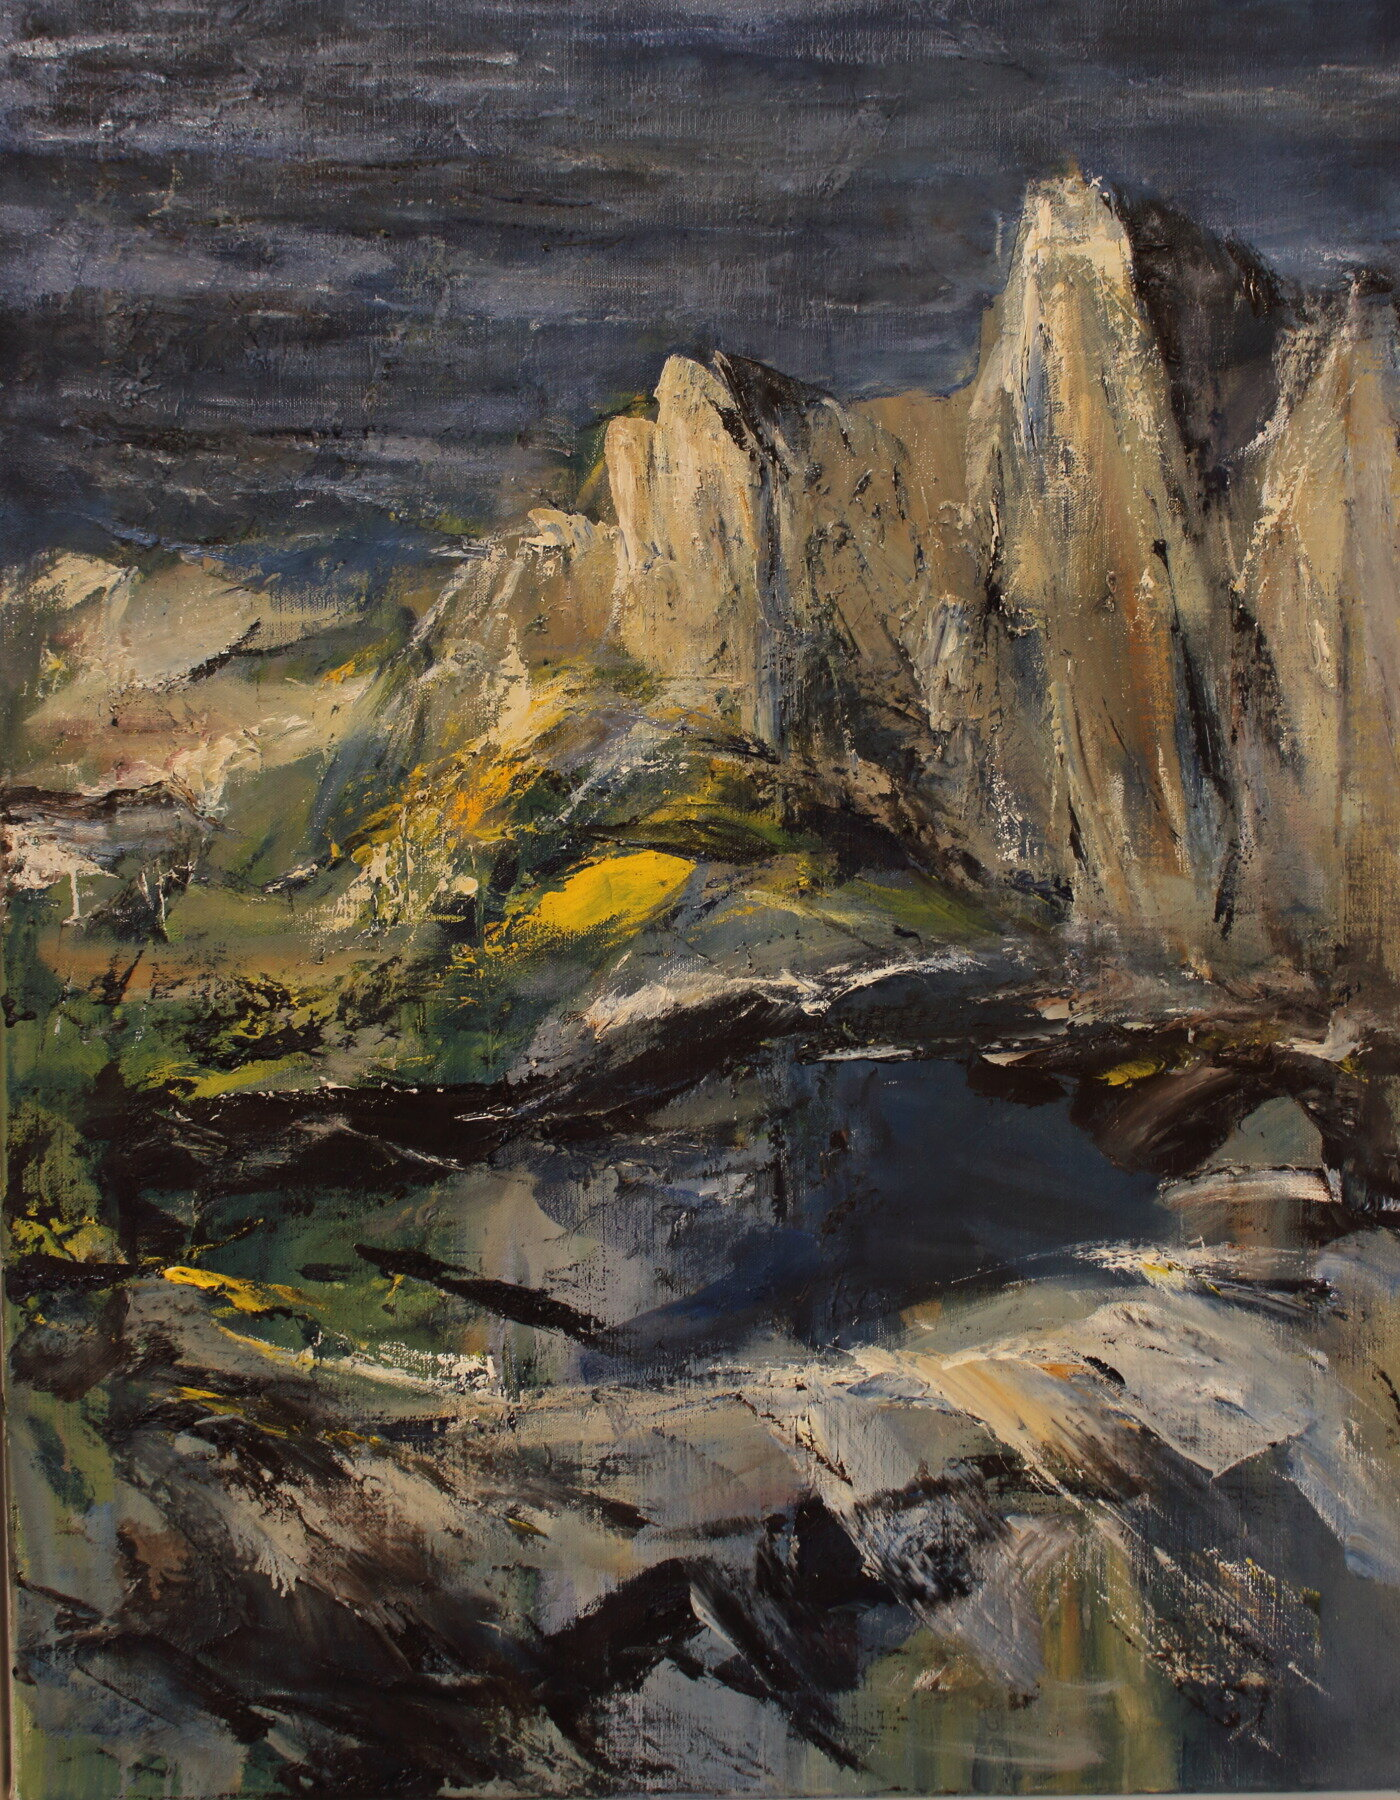 Sea and Cliffs 1   100cm x 80cm.JPG